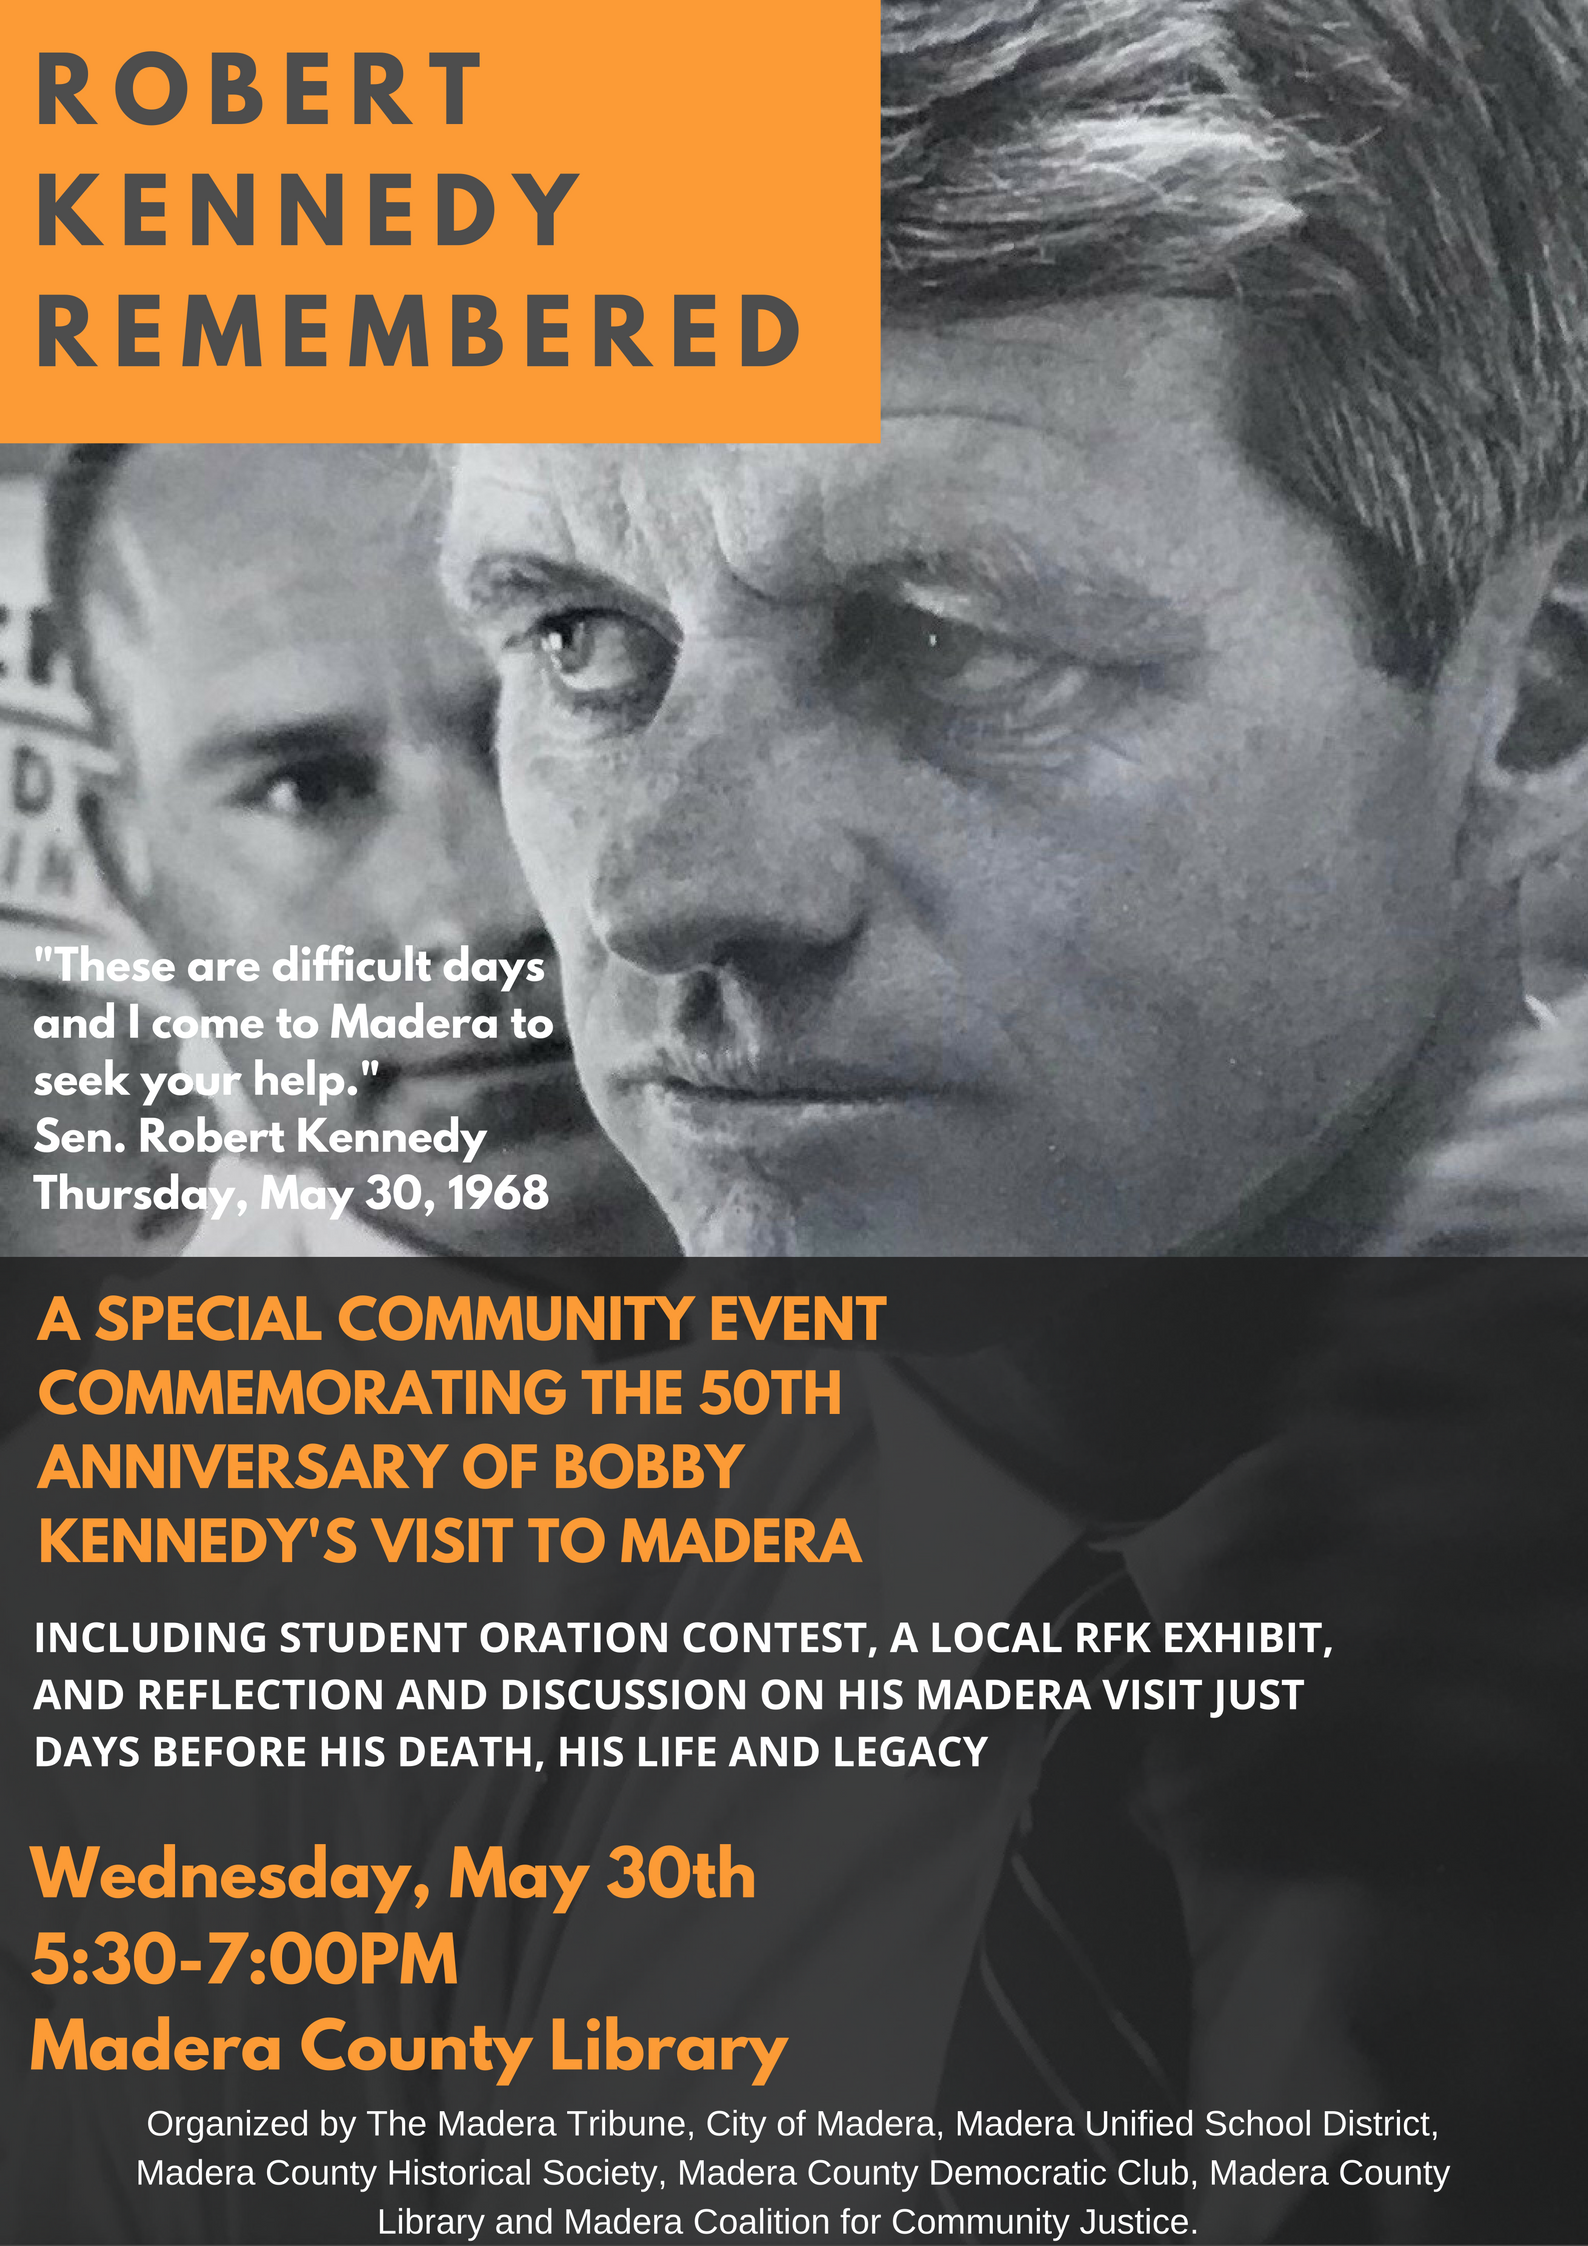 RFK Remembered Event May 30th Madera County Library 5:30-7:00pm